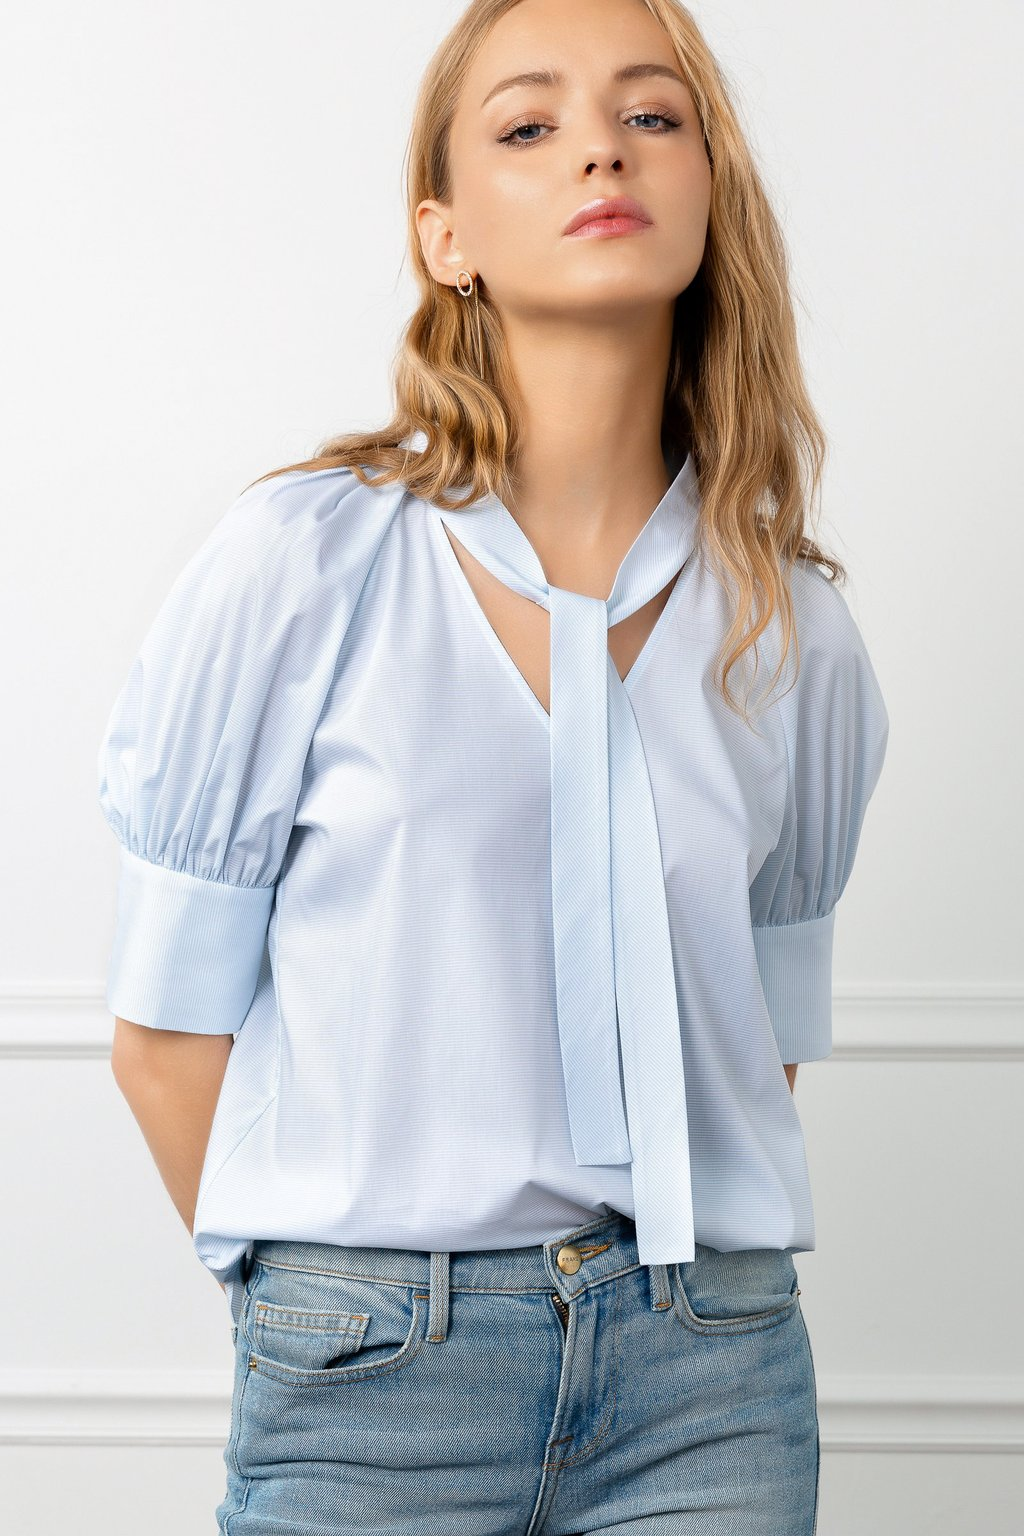 Elliott Blue Blouse by J.ING LA women's fashion